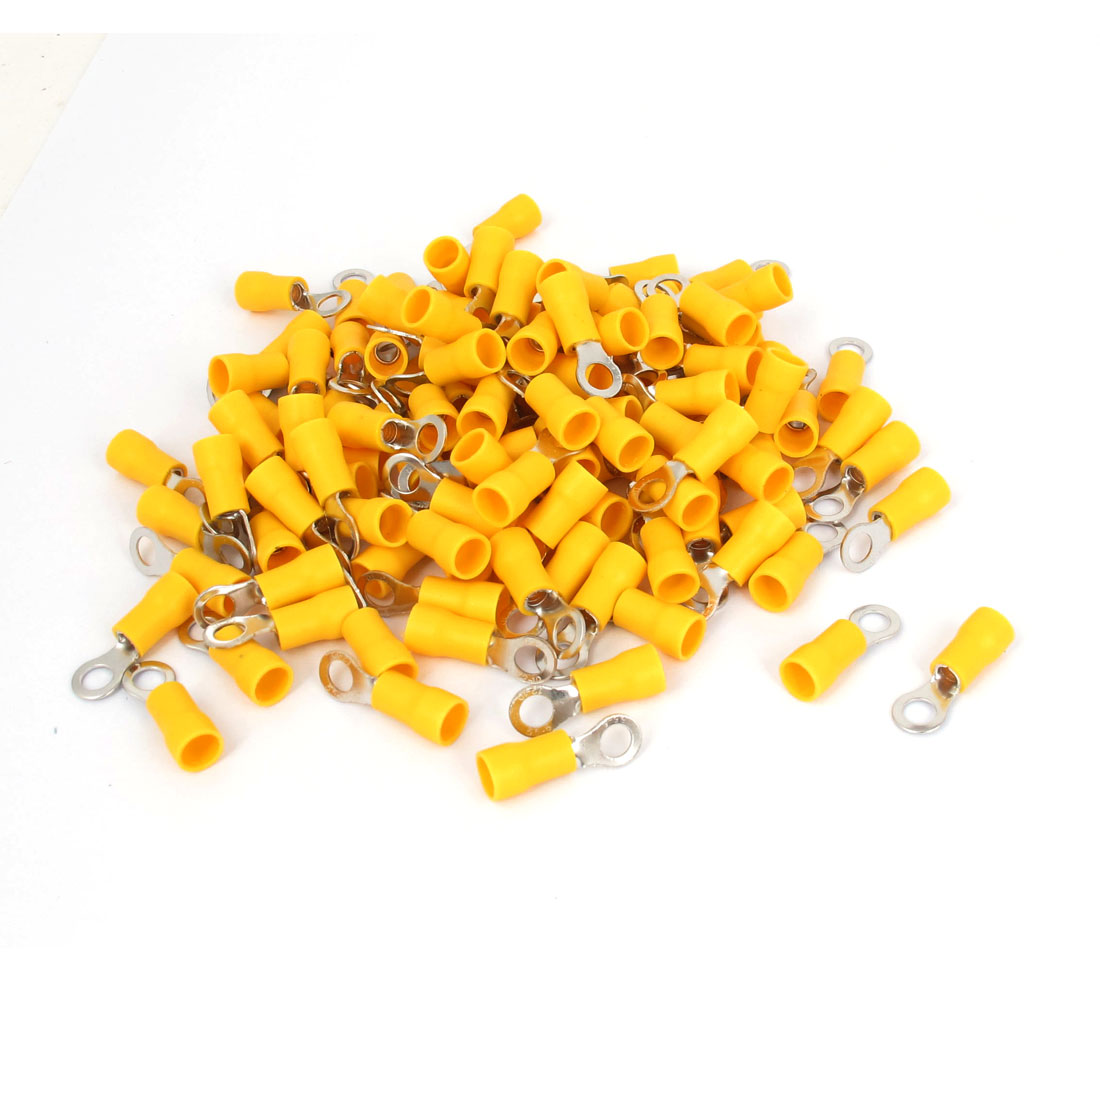 120pcs Yellow Boot RV3.5-6 Wire Cable Pre-insulated Ring Terminals Connectors